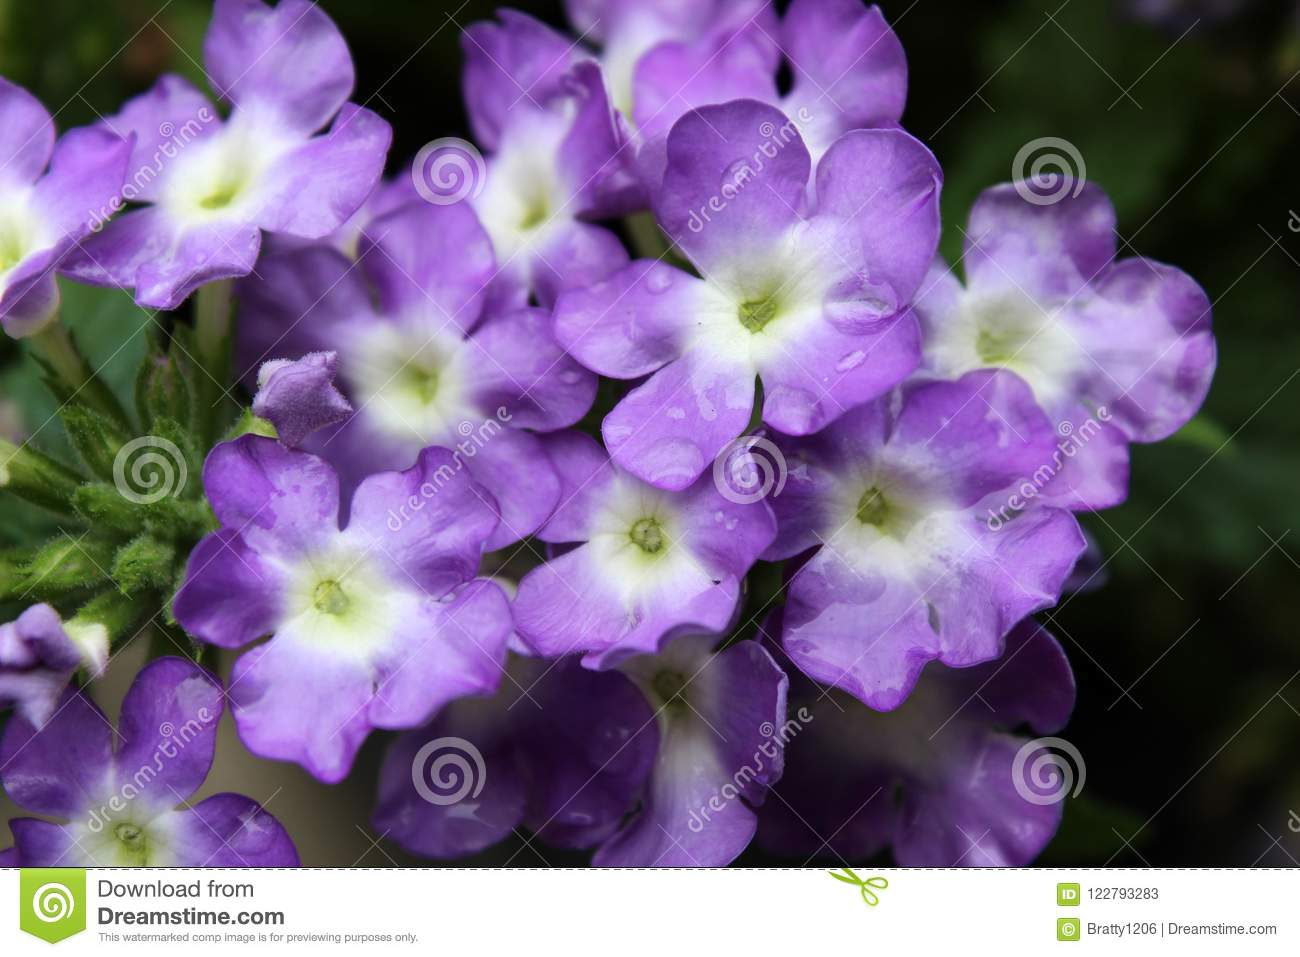 Pretty Purple Flowers With Frilly Petals With Green Leaves Stock